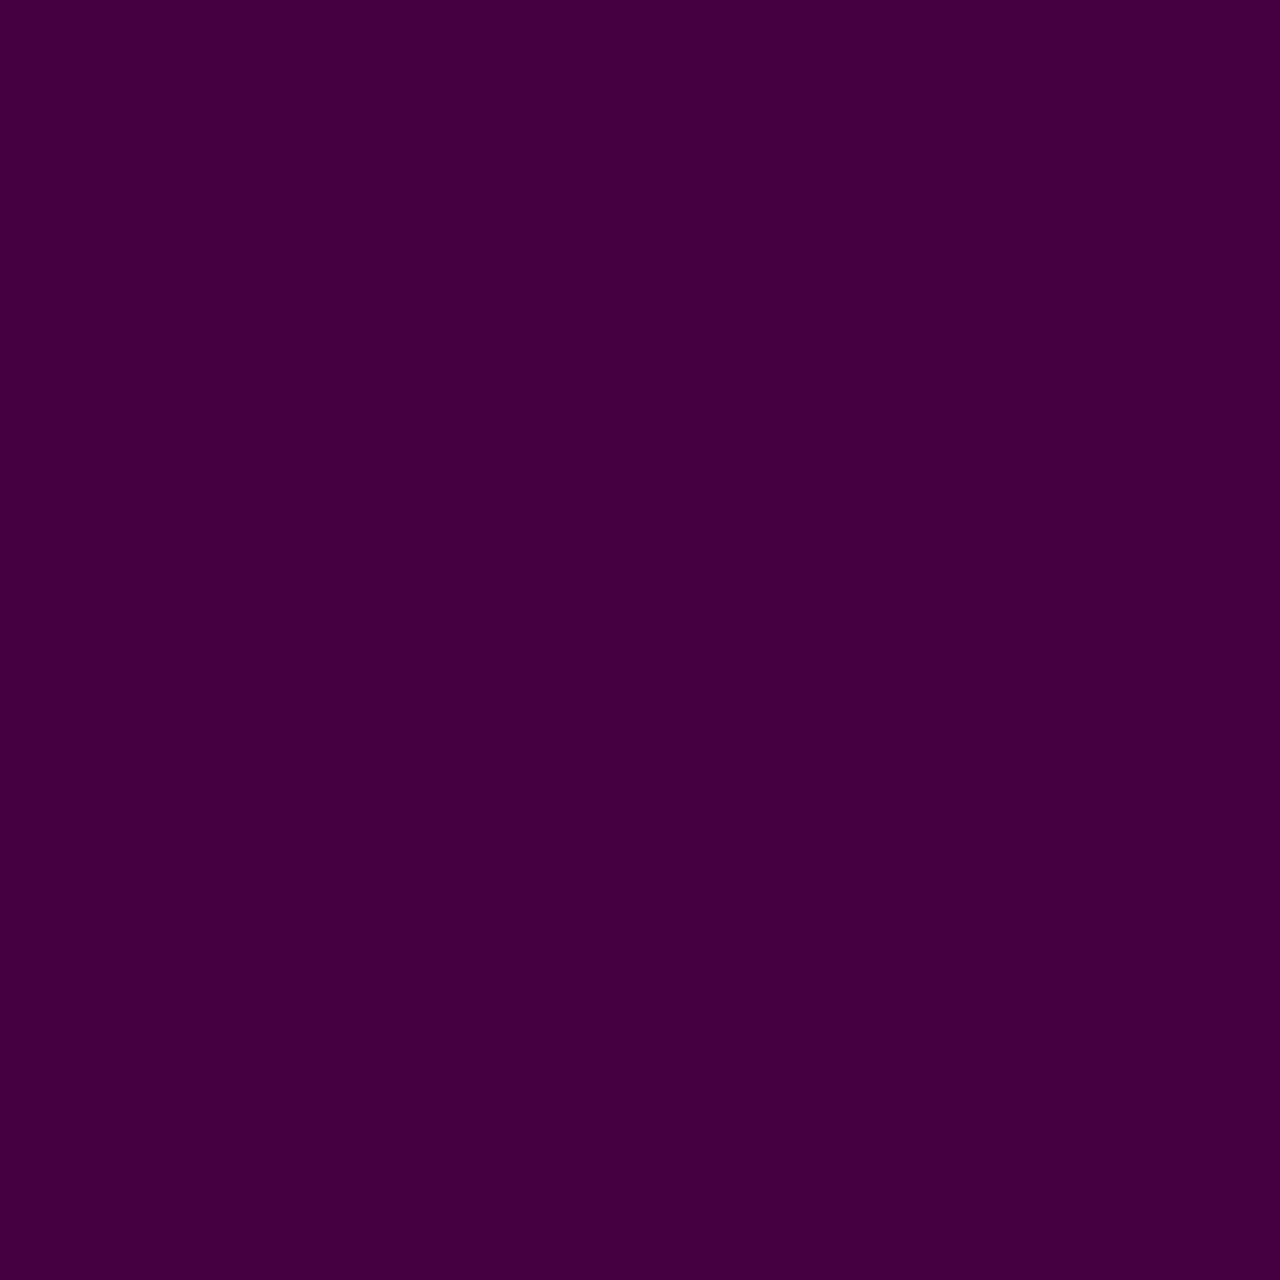 Flock It Suede Tex Adhesive Royal Purple 16 Oz Midwest Technology Products